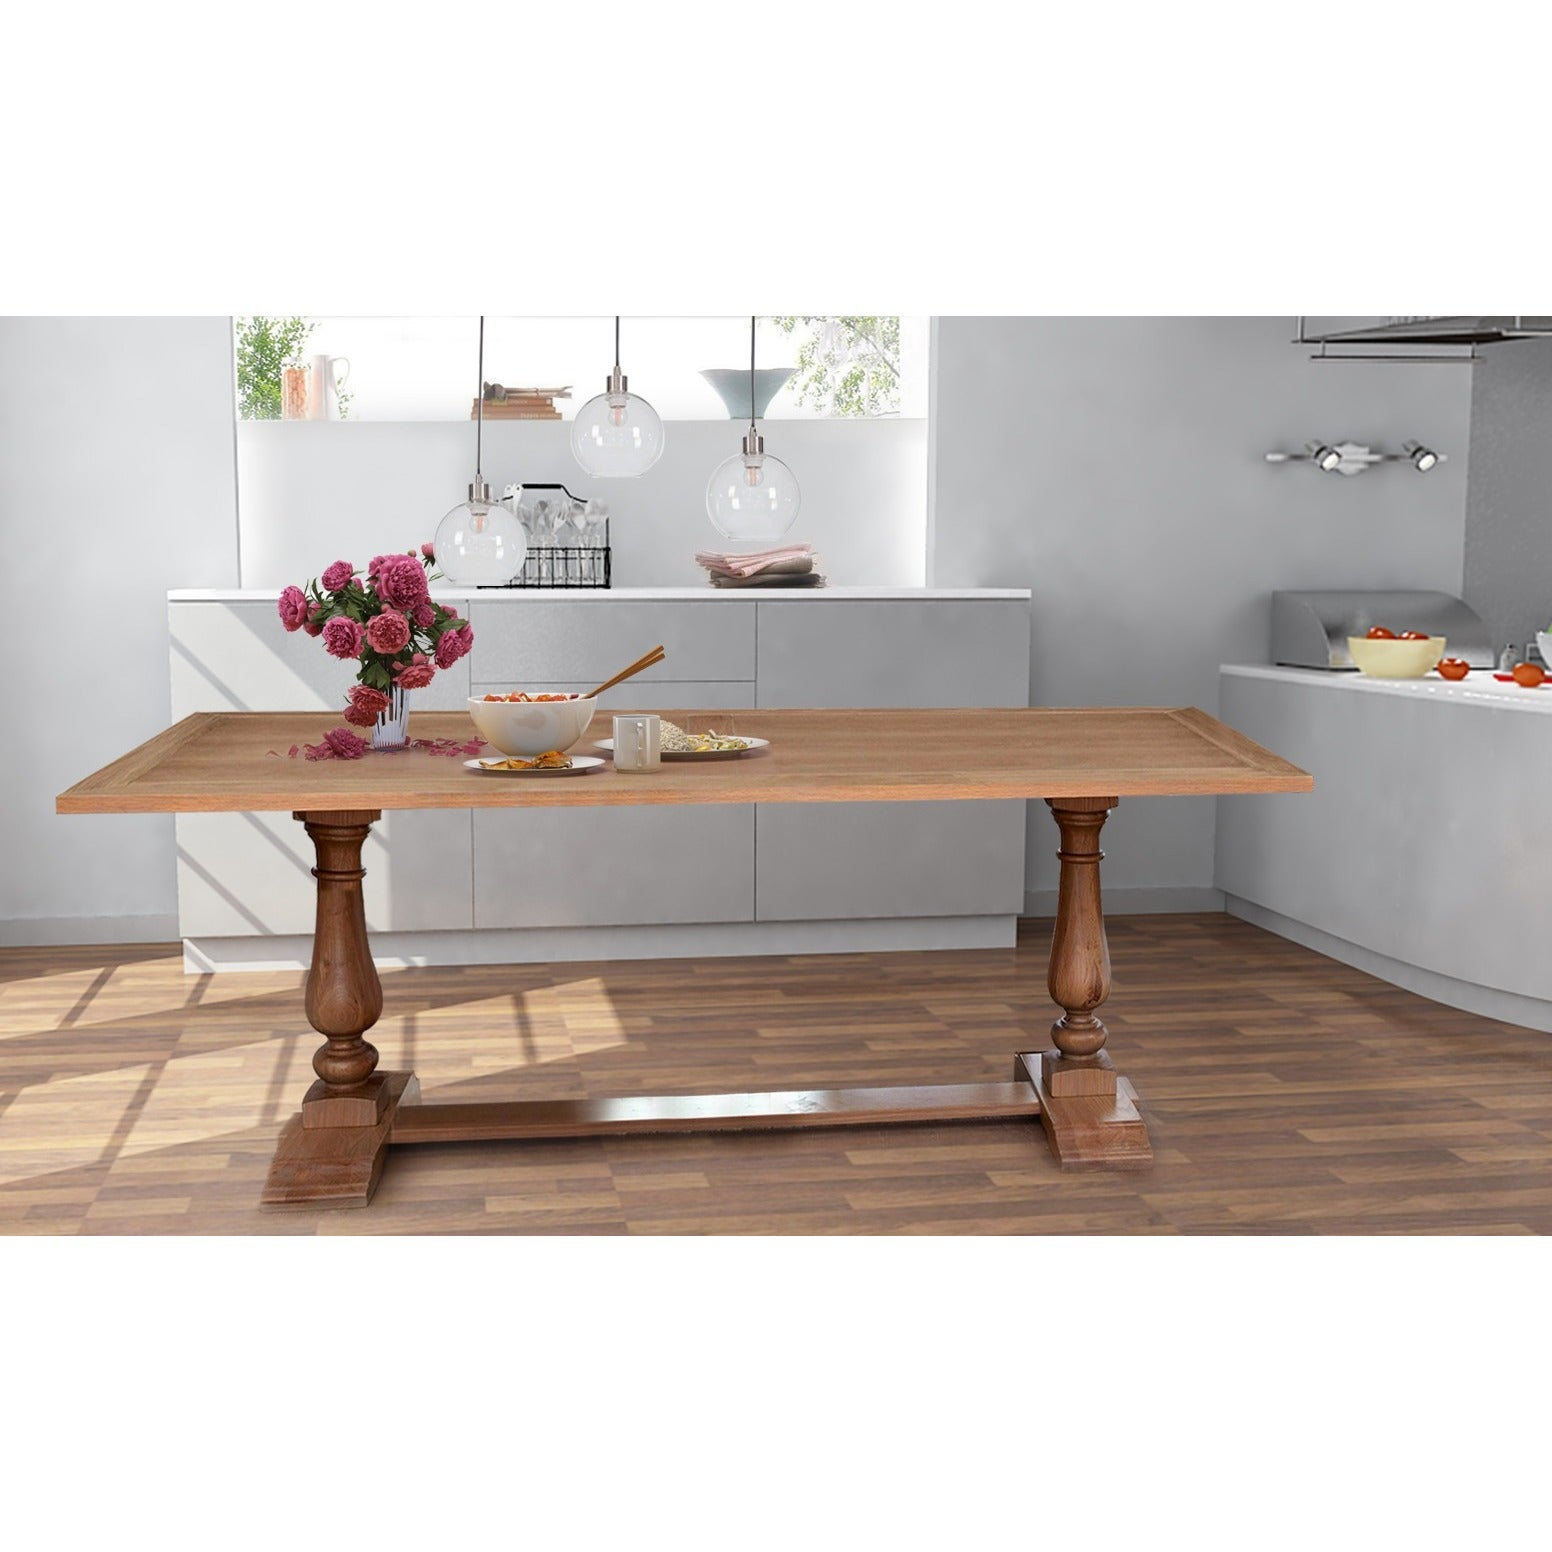 Hector 95 inch acacia wood dining table